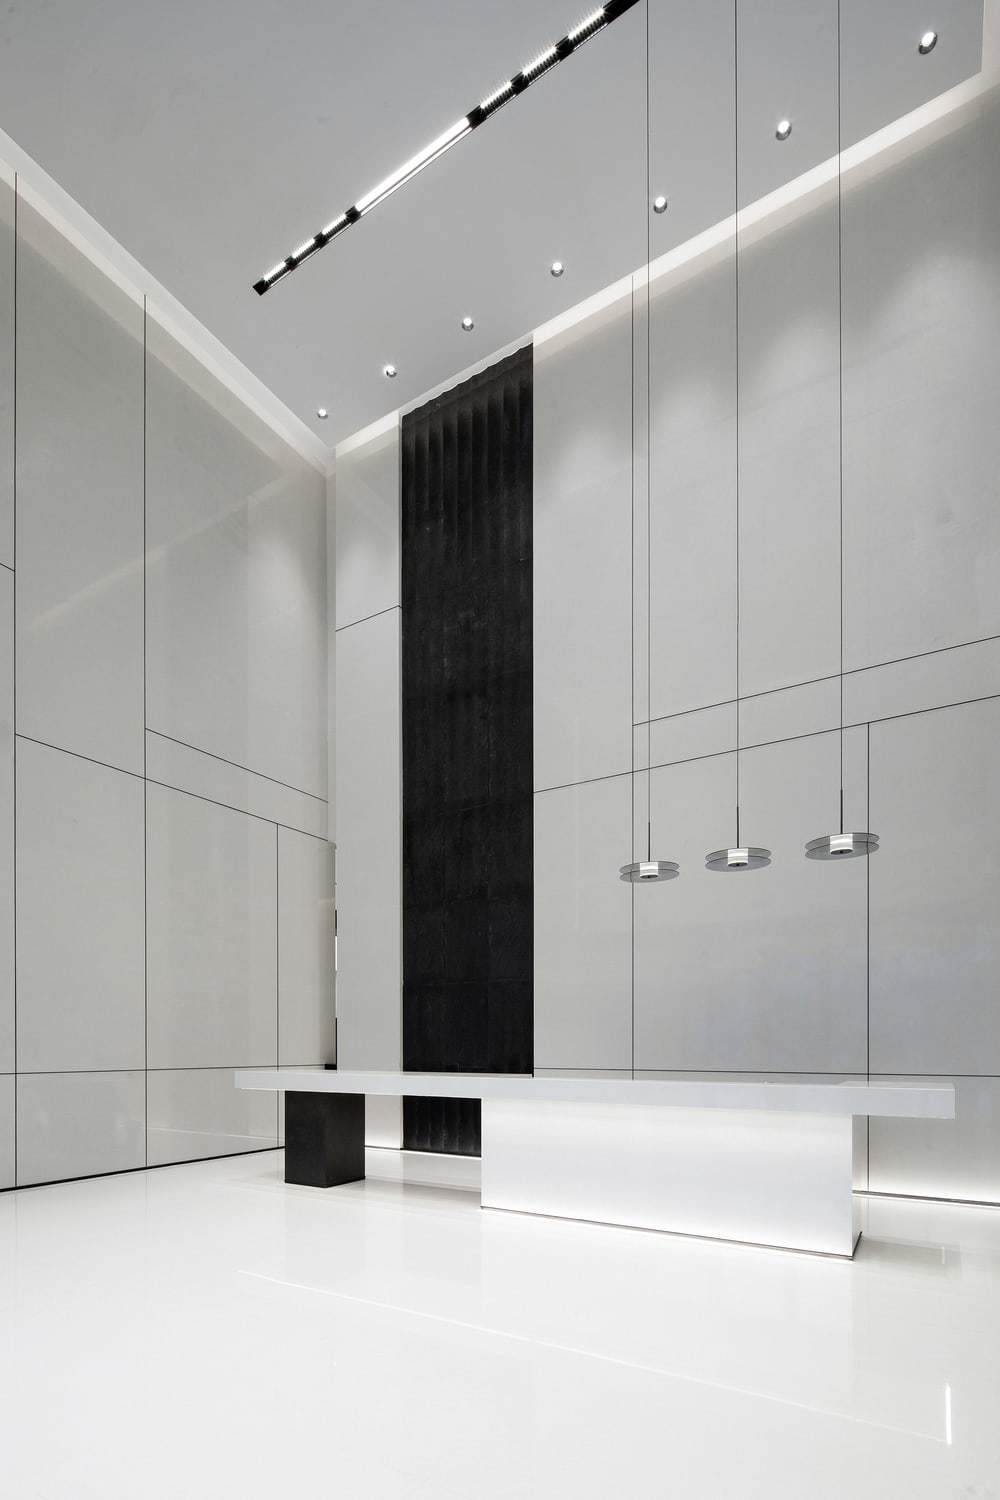 Taiyuan Longcheng Sales Office by W Studio